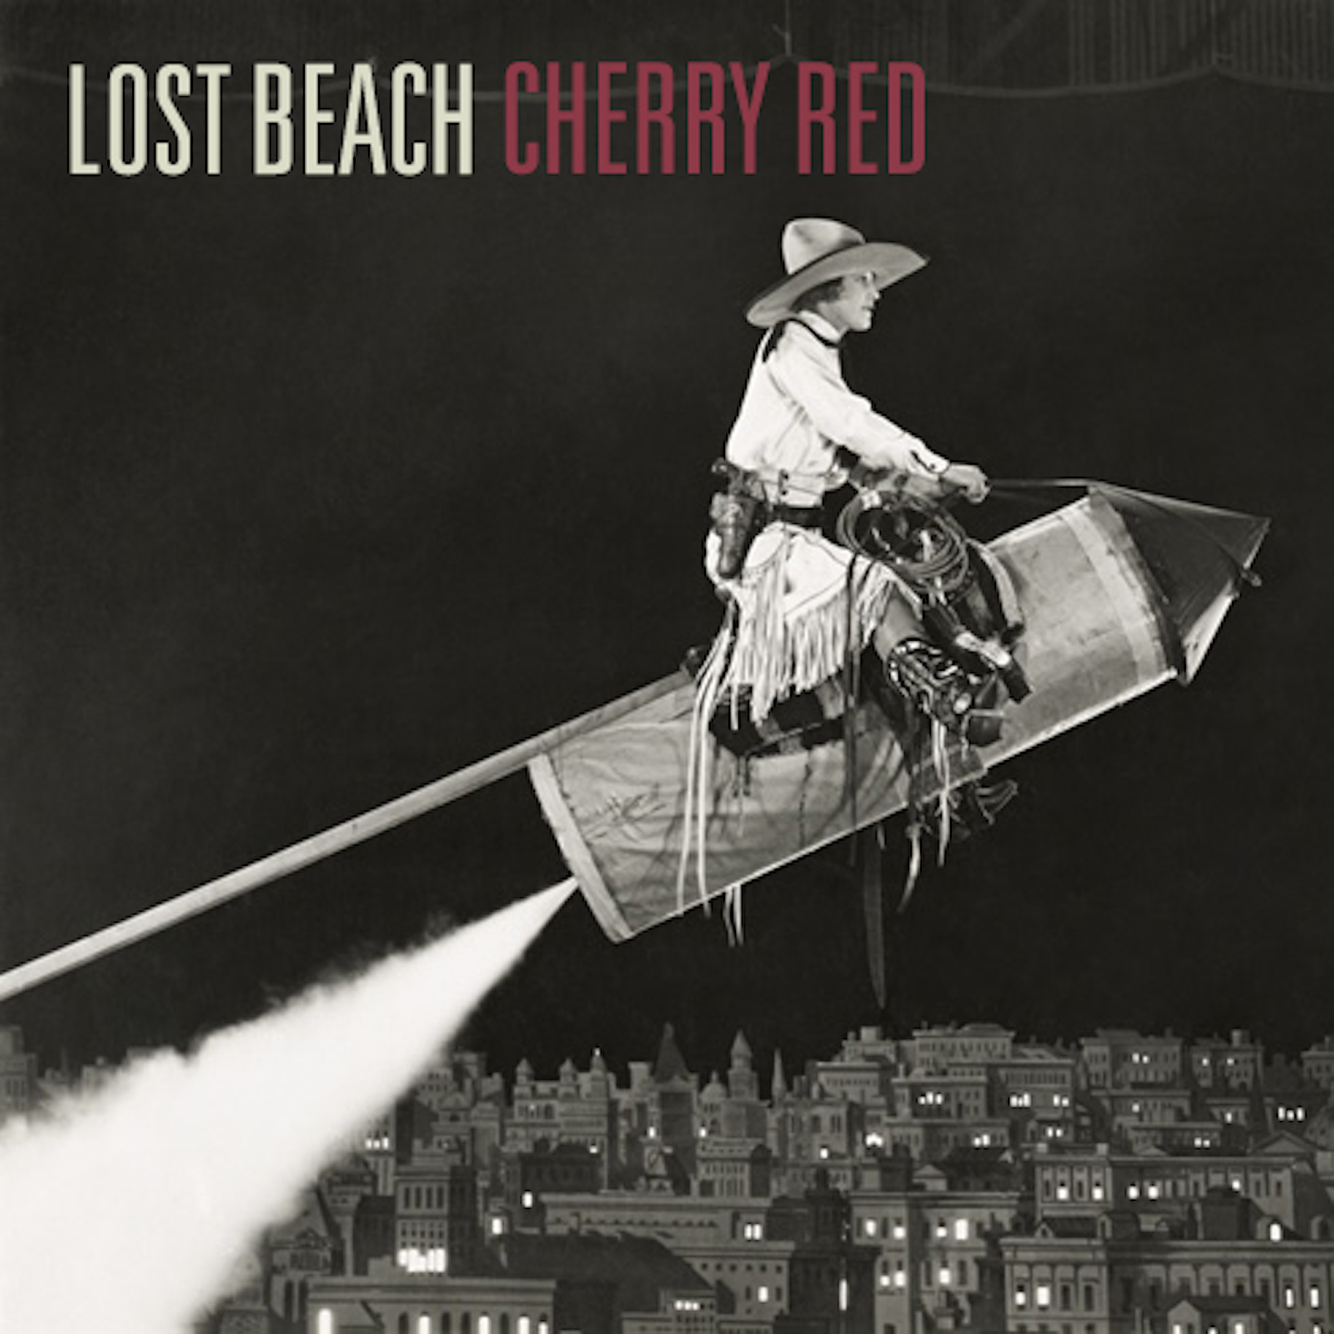 Lost Beach Cherry Red.jpg